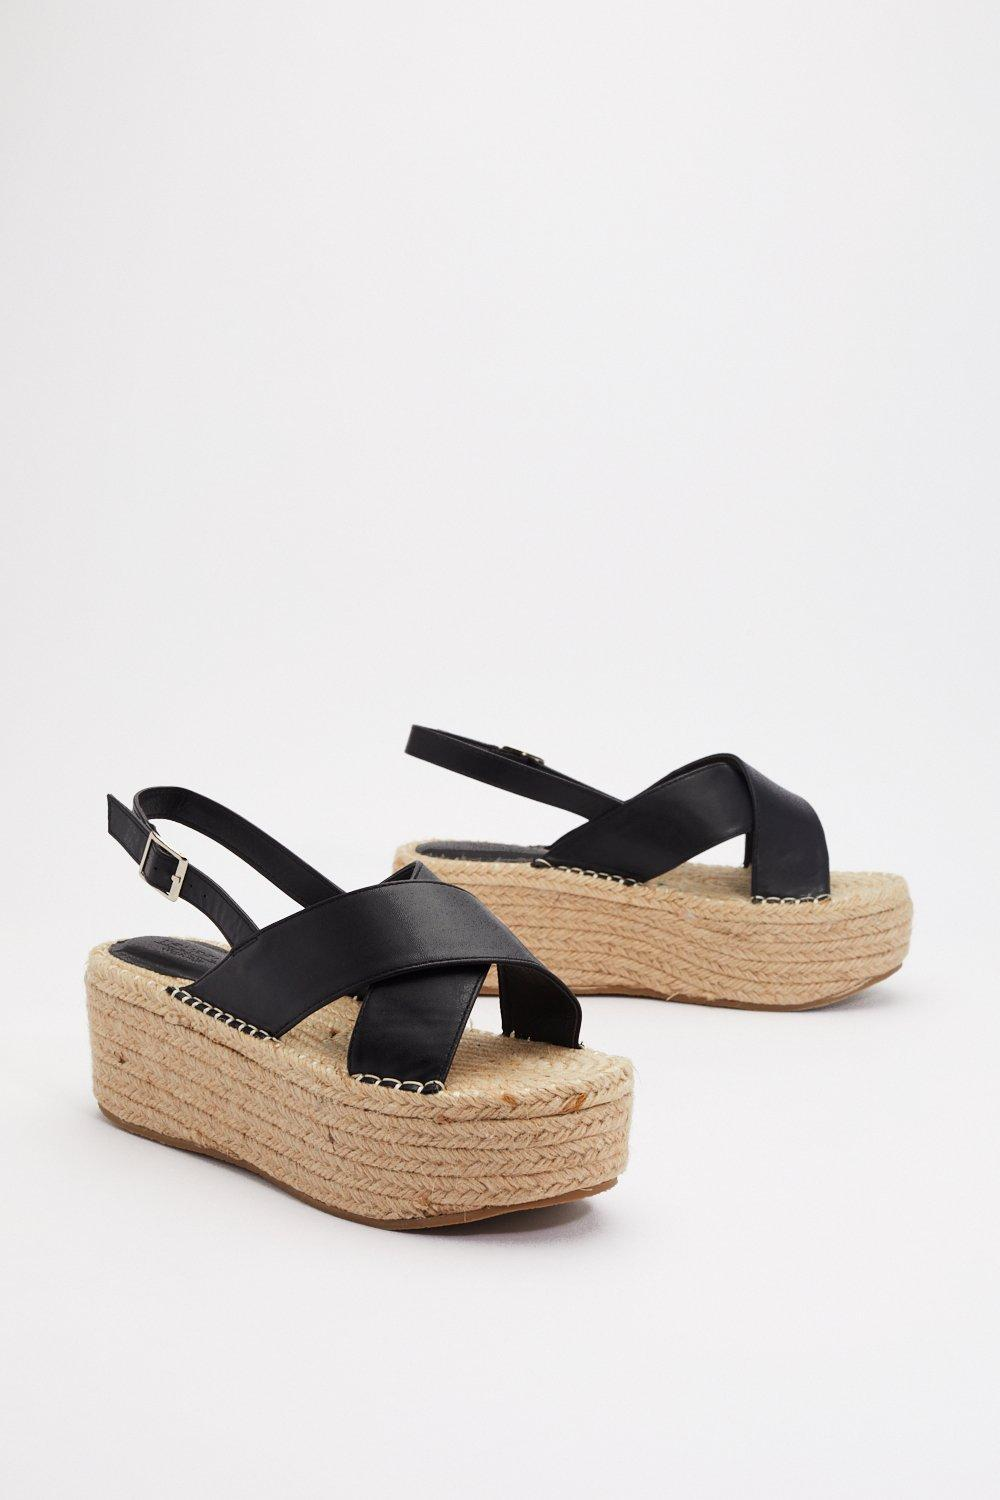 a65140fa232 ... Cross Woven Platform Sandals. Hover to zoom